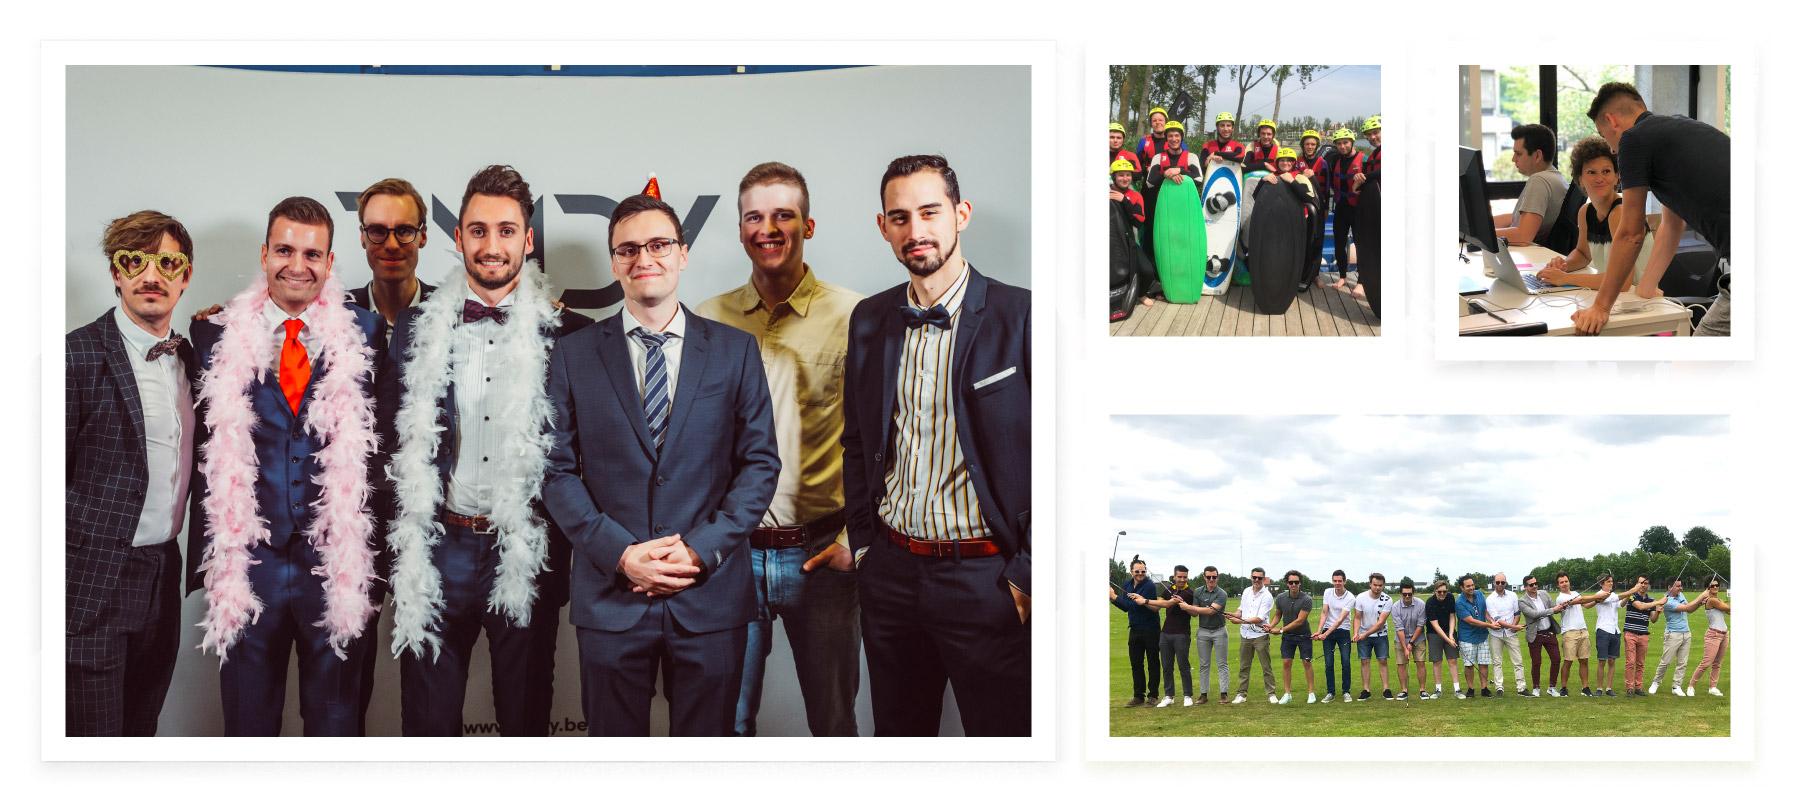 RMDY Vacatures - Fotocollage collega's